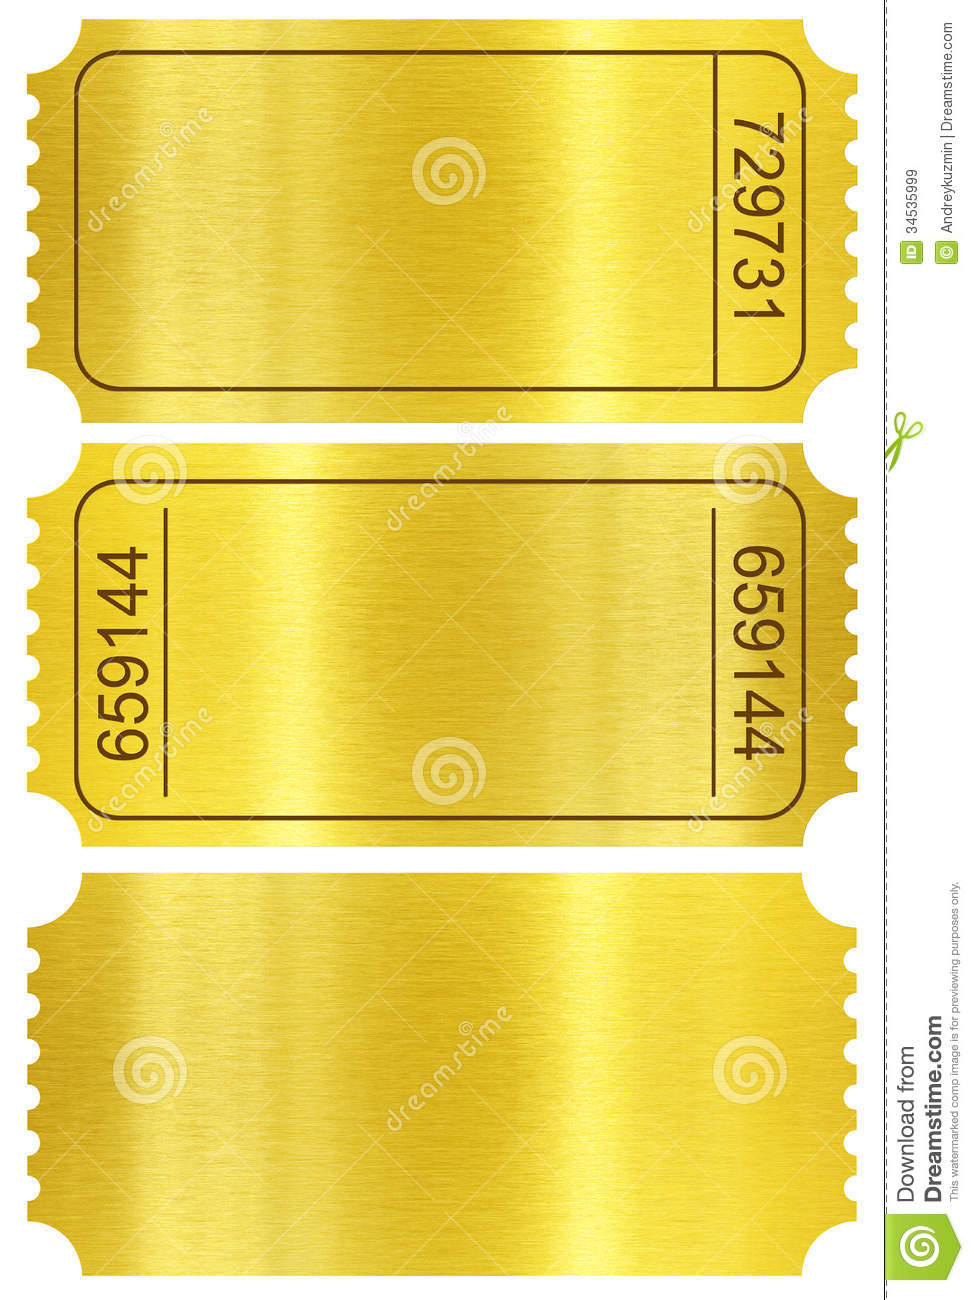 ticket set  golden ticket stubs isolated on white stock